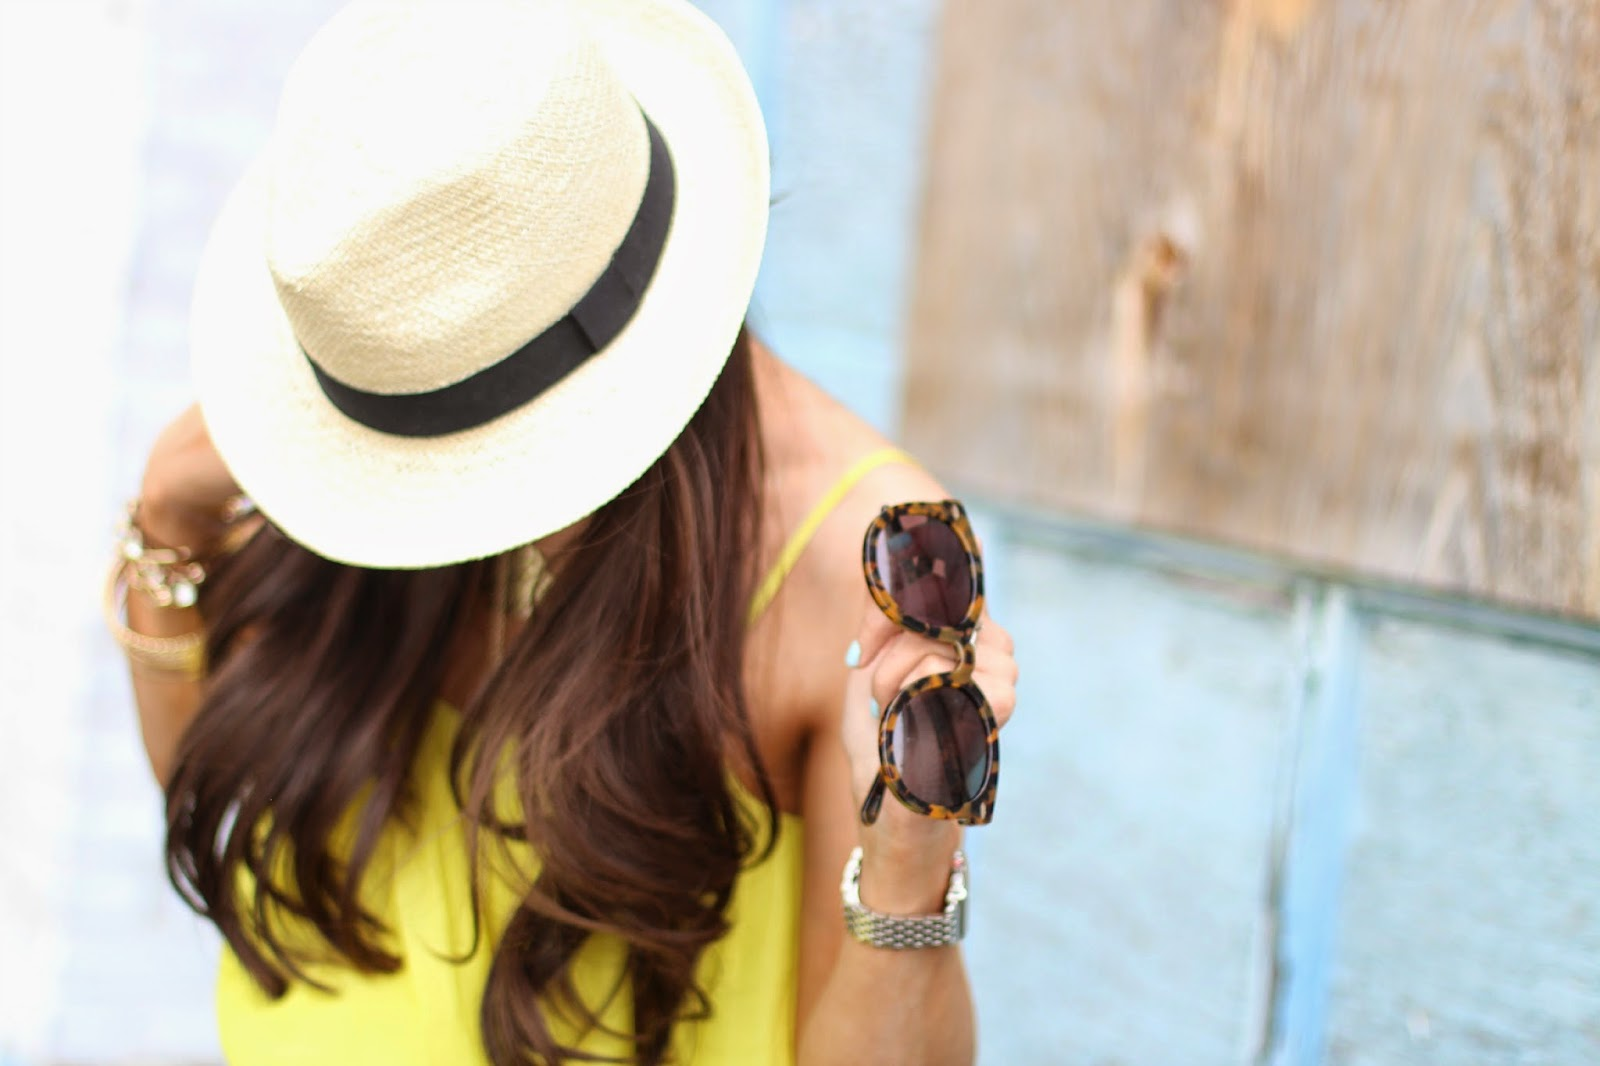 www.TheSweetestThingBlog.com, Emily Gemma, How To Wear A Fedora, Ripped Skinny Jeans, Valentino Inspired Sandals, Pinterest Summer Outfit 2014, Pinterest SUmmer Fashion, Michael Kors Runway Watch, Fashion Blog, Style Blog, Pinterest Outfits for Summer, Karen Walker Super Duper Strength Sunglasses, Gold Arm Party, Gold Bracelets, Nordstrom Studded Sandals, Gap Ripped Skinny Jeans, Forever 21 Neon Yellow Tank, Gorjana Rings, Mindy Maes Market Bracelet